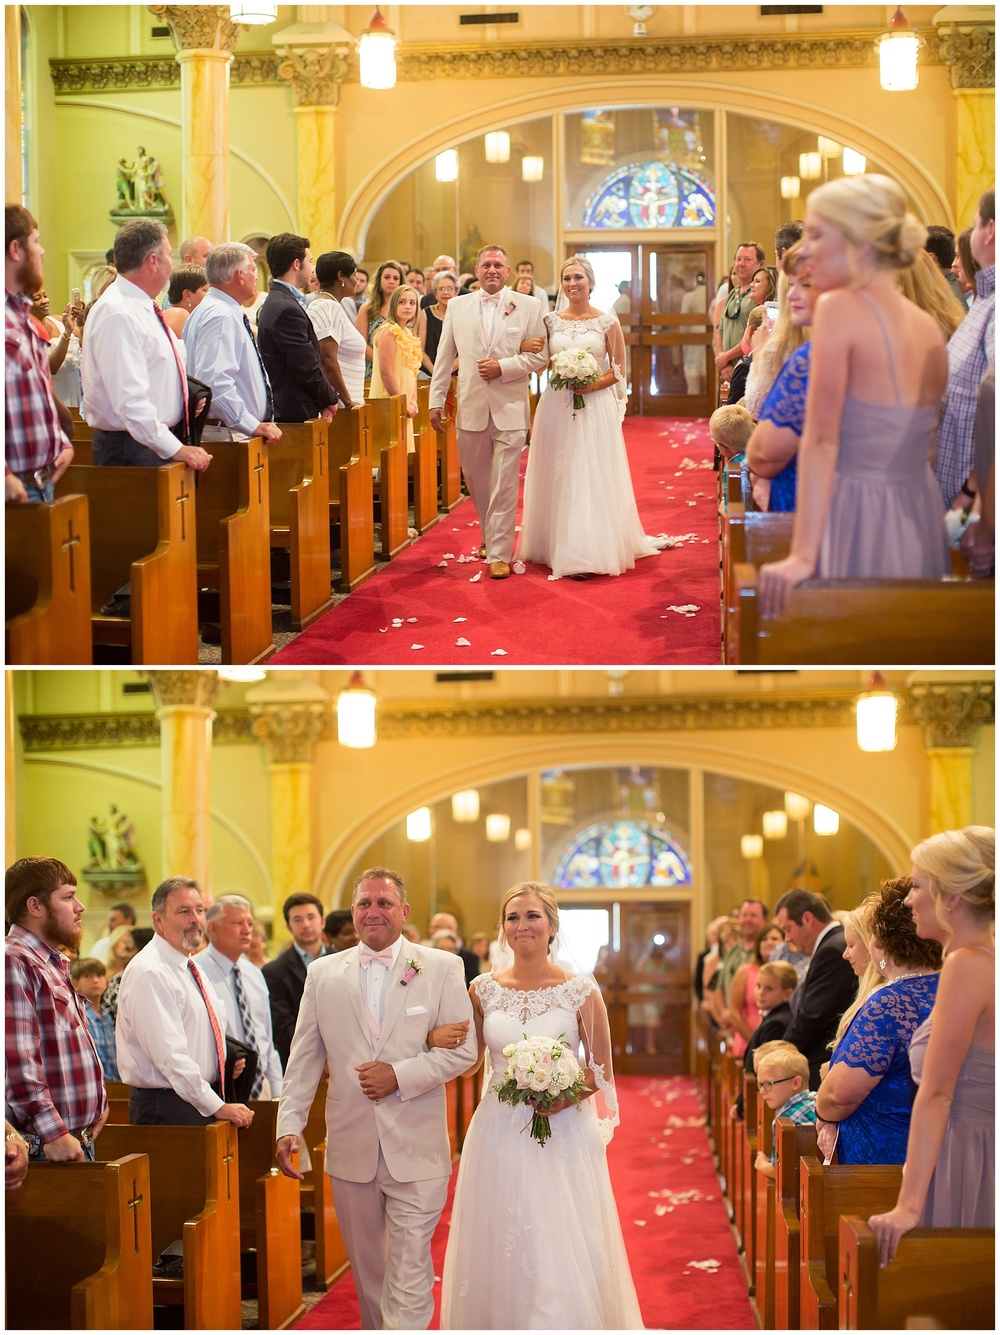 Aly_HolyTrinity_Shreveport_LittleRock_Wedding_17.jpg